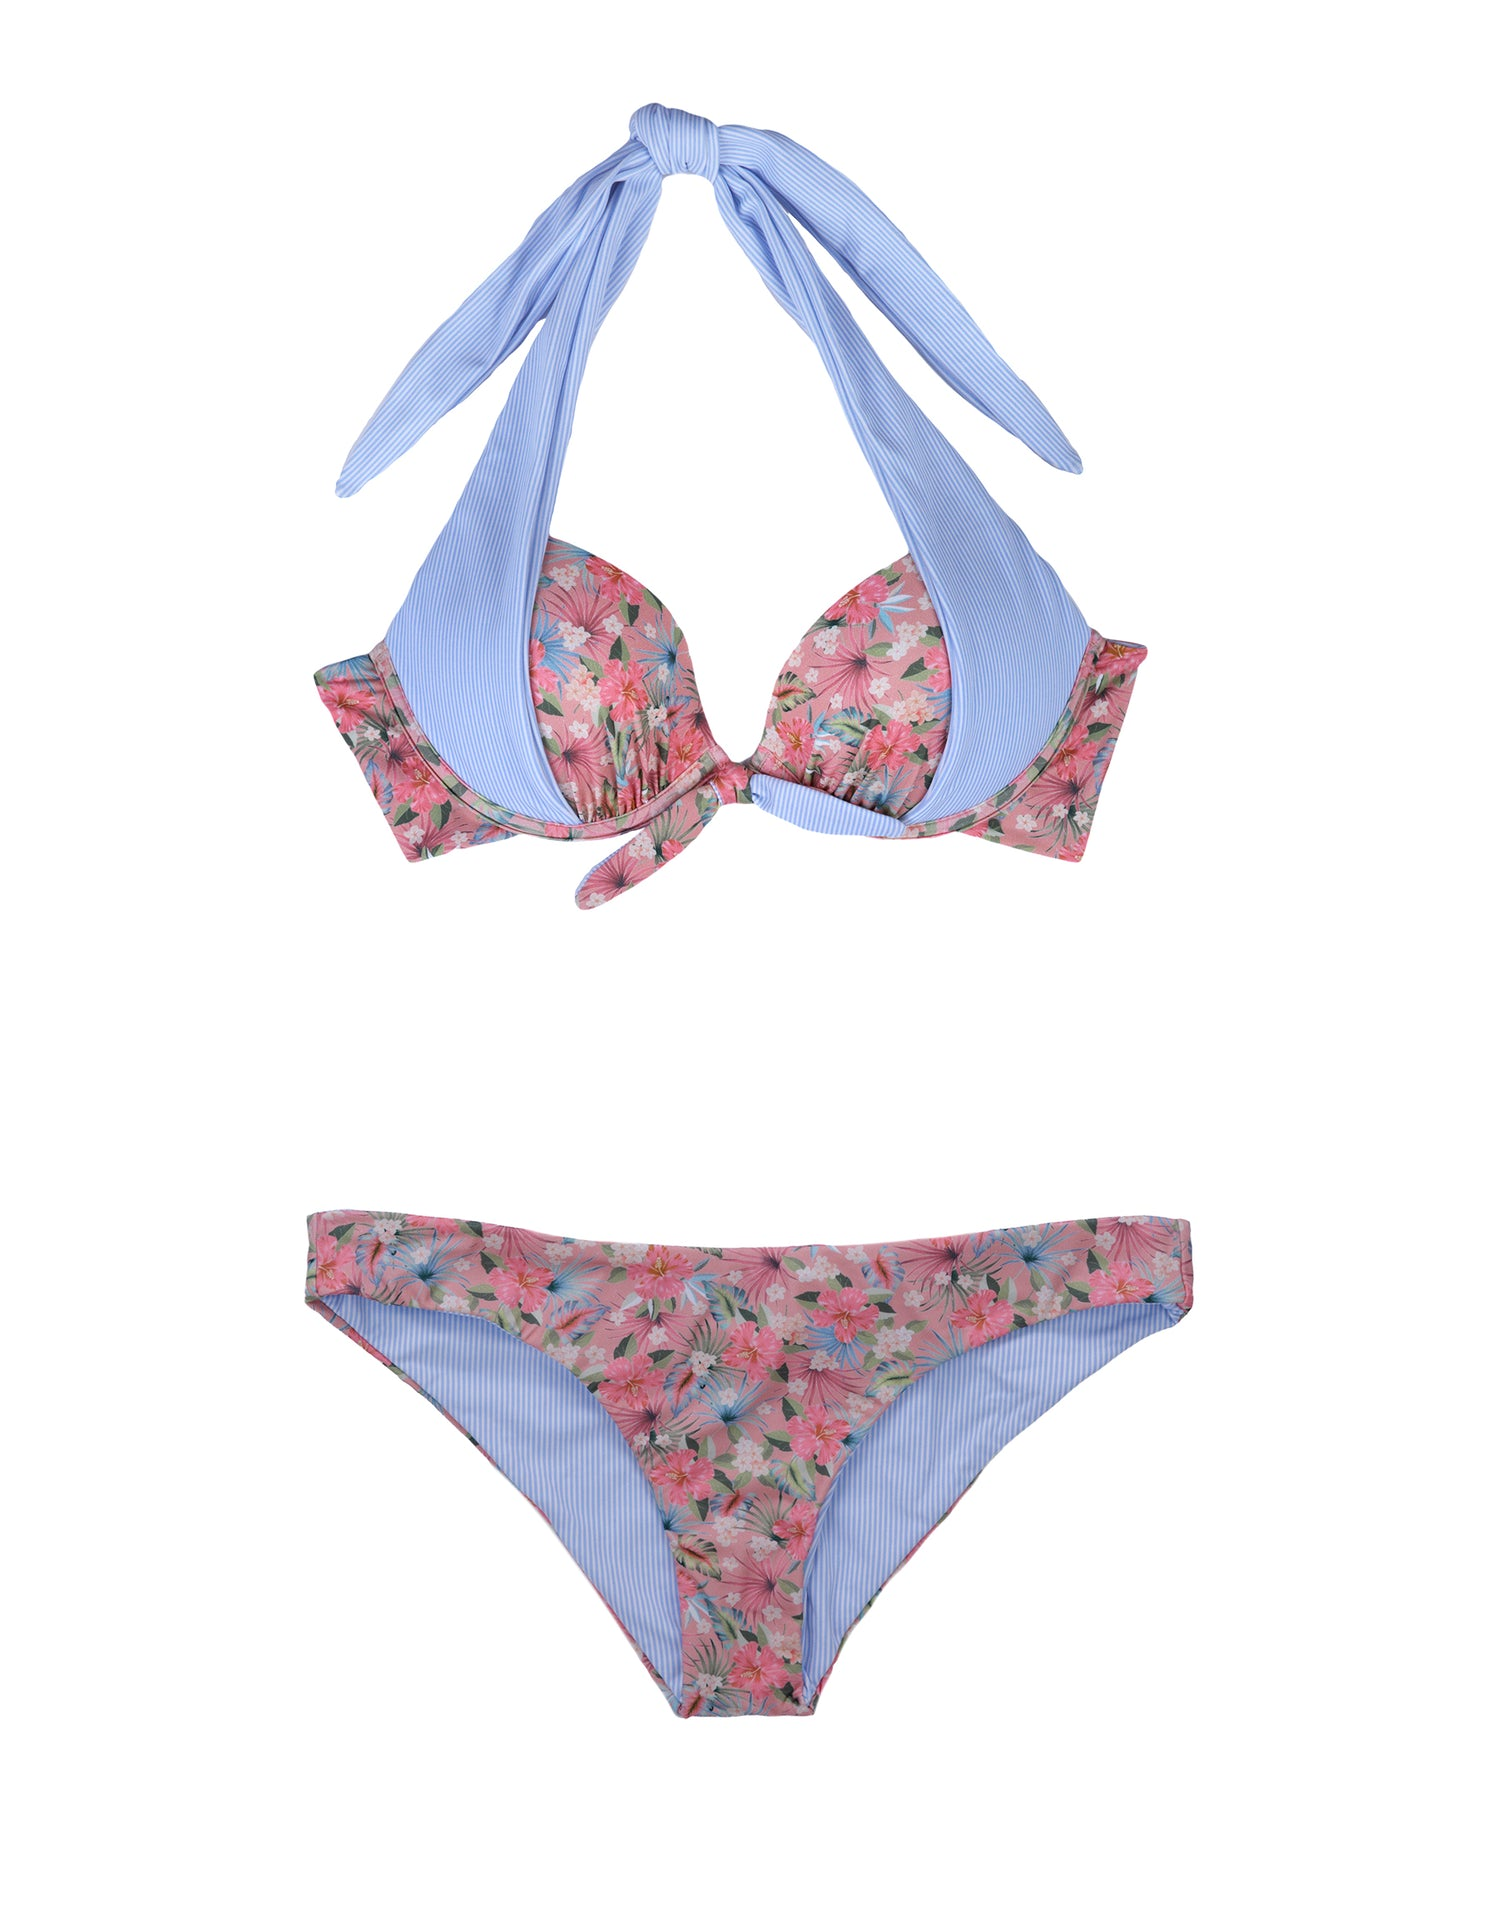 Stephanie Reversible Midi Bikini Bottom in Marseille Floral - product view